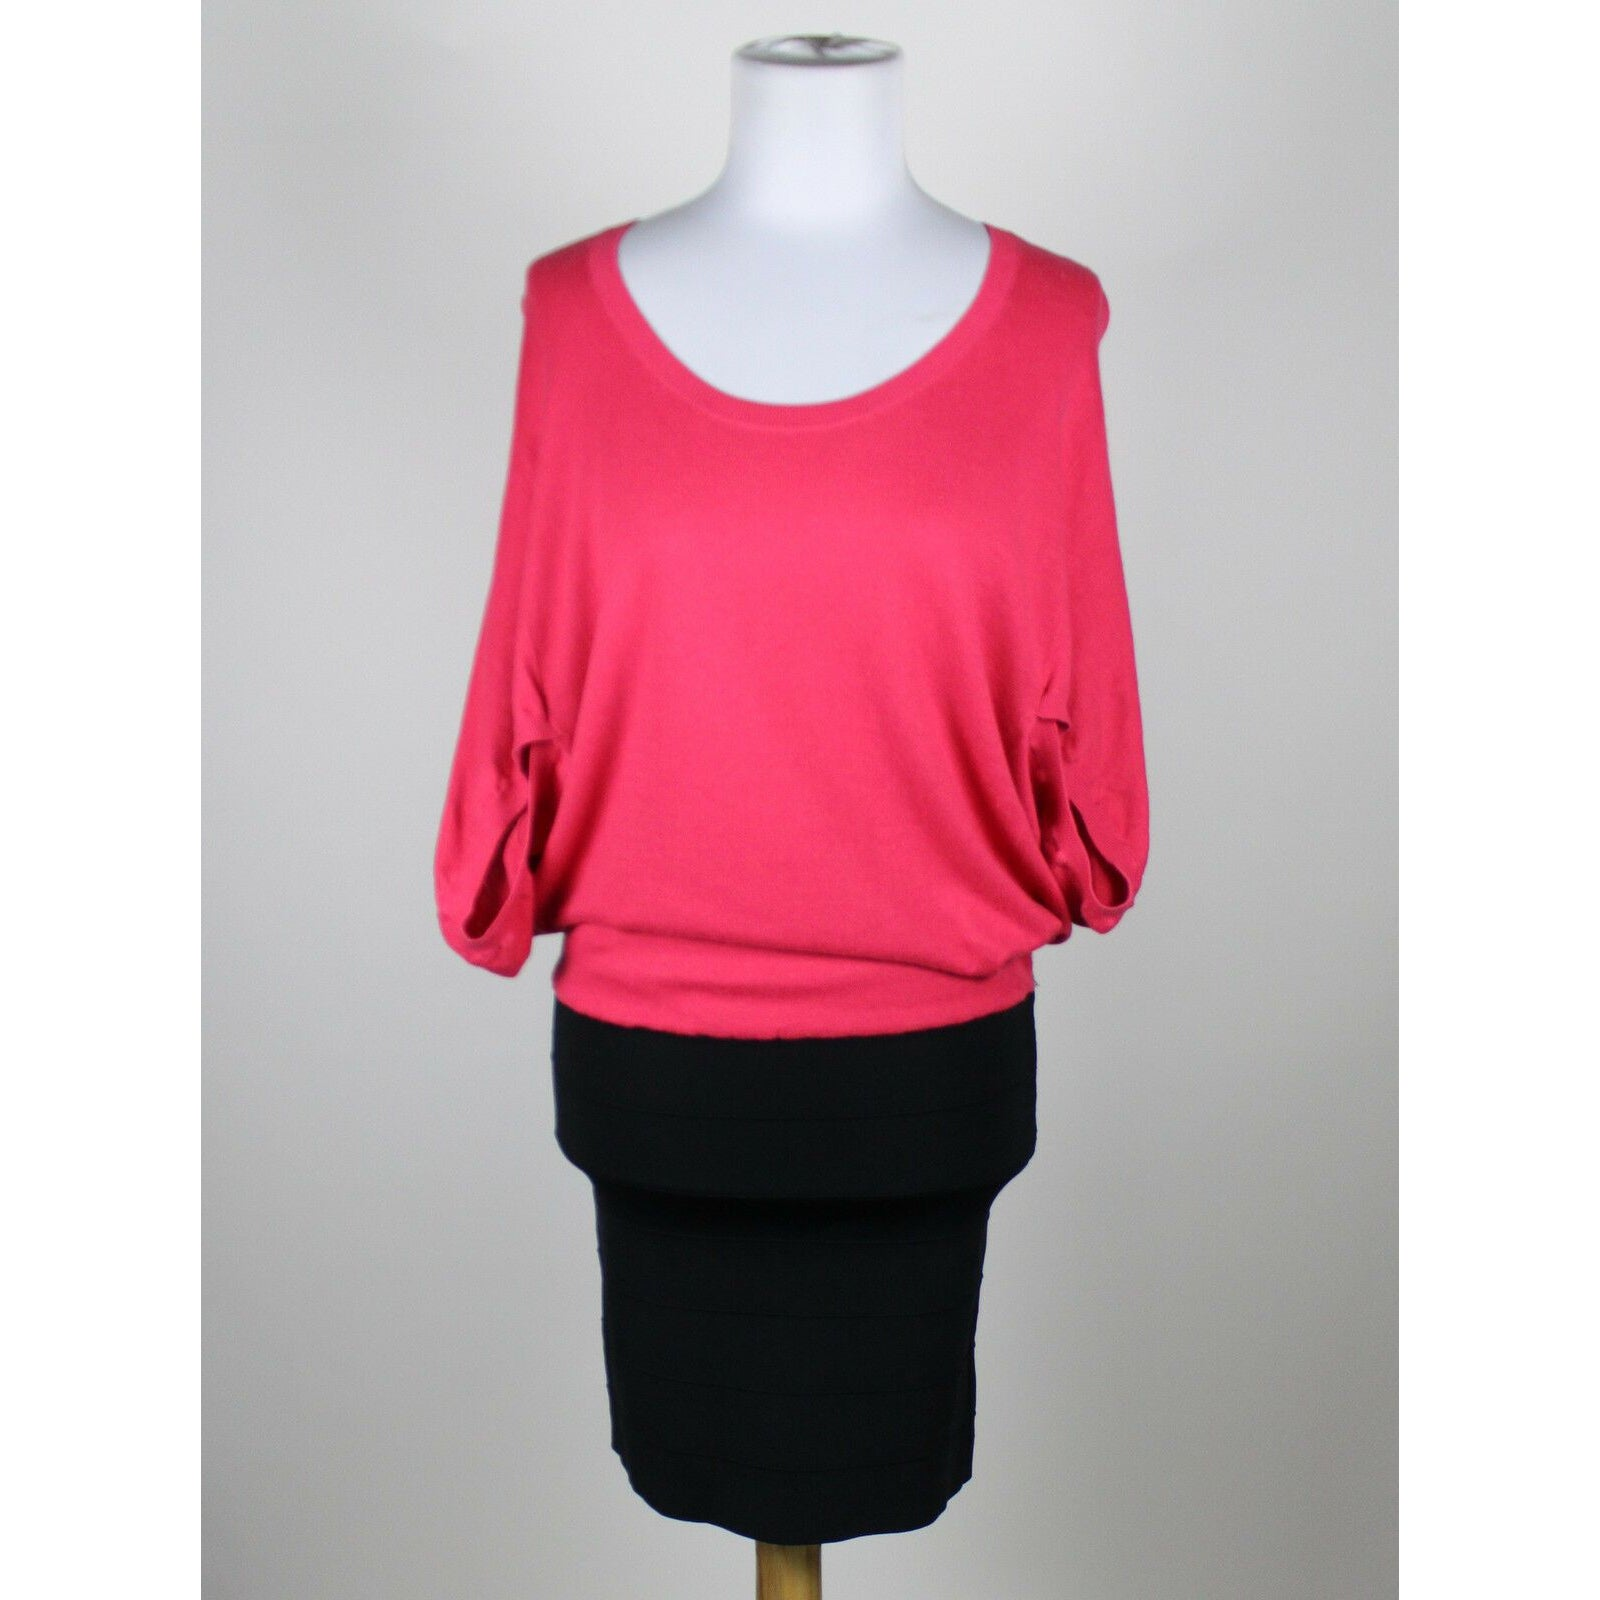 BCBGENERATION pink black cotton blend knit top & stretchy skirt blouson dress S-Newish